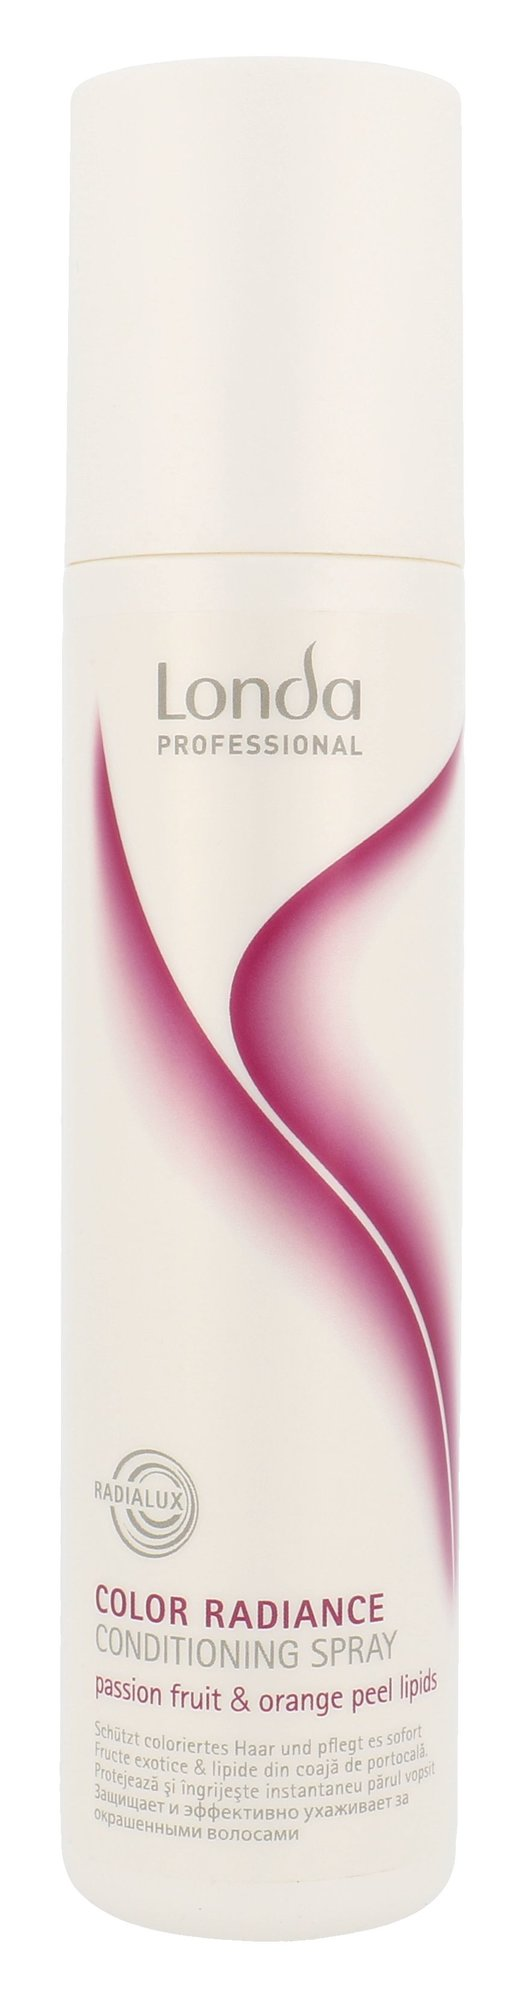 Londa Professional Color Radiance Cosmetic 250ml